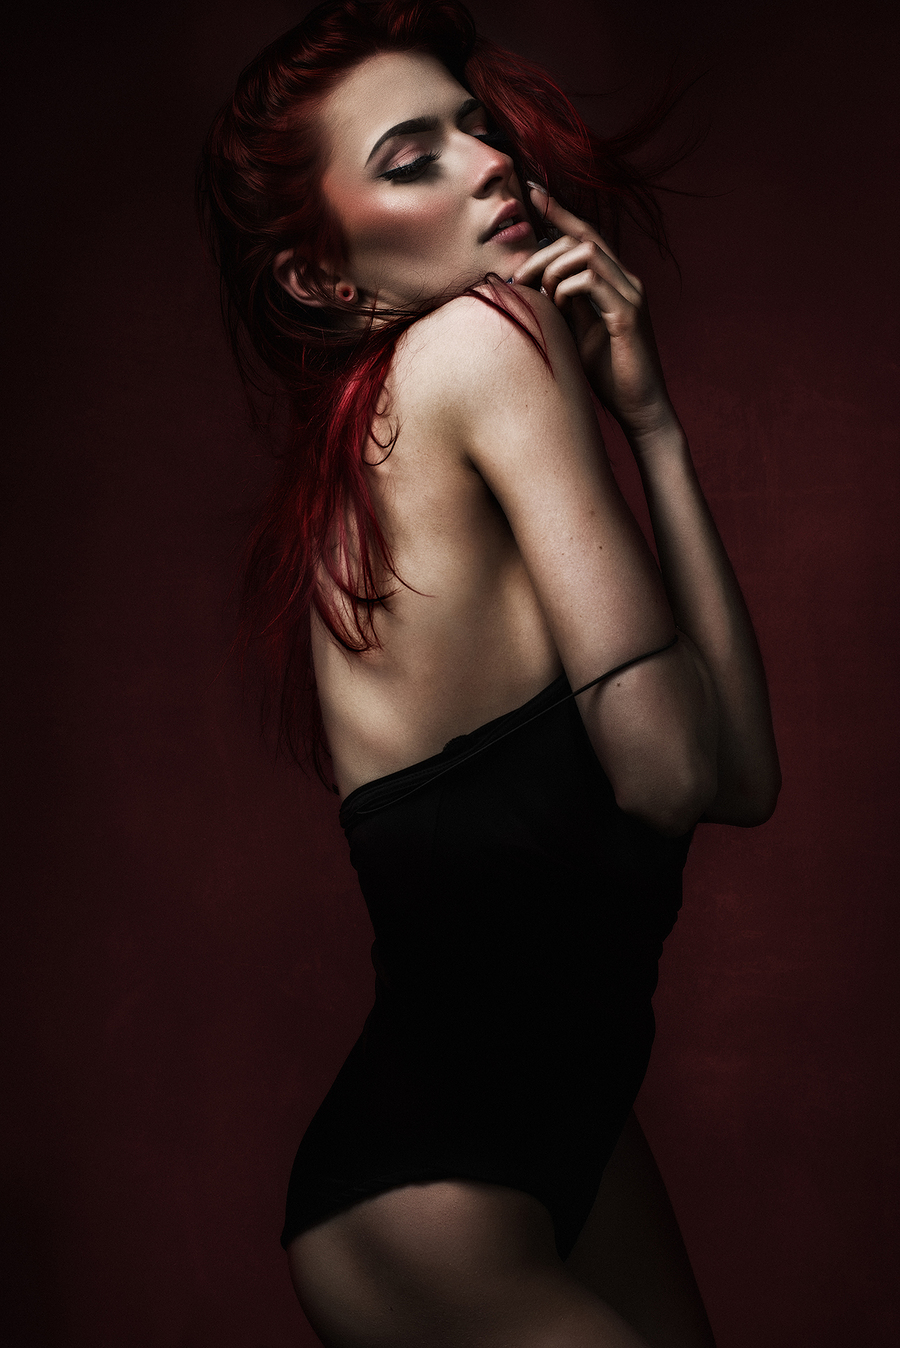 Photography by Andy Park, Model Ell Mae, Post processing by Andy Park / Uploaded 6th March 2020 @ 09:24 PM